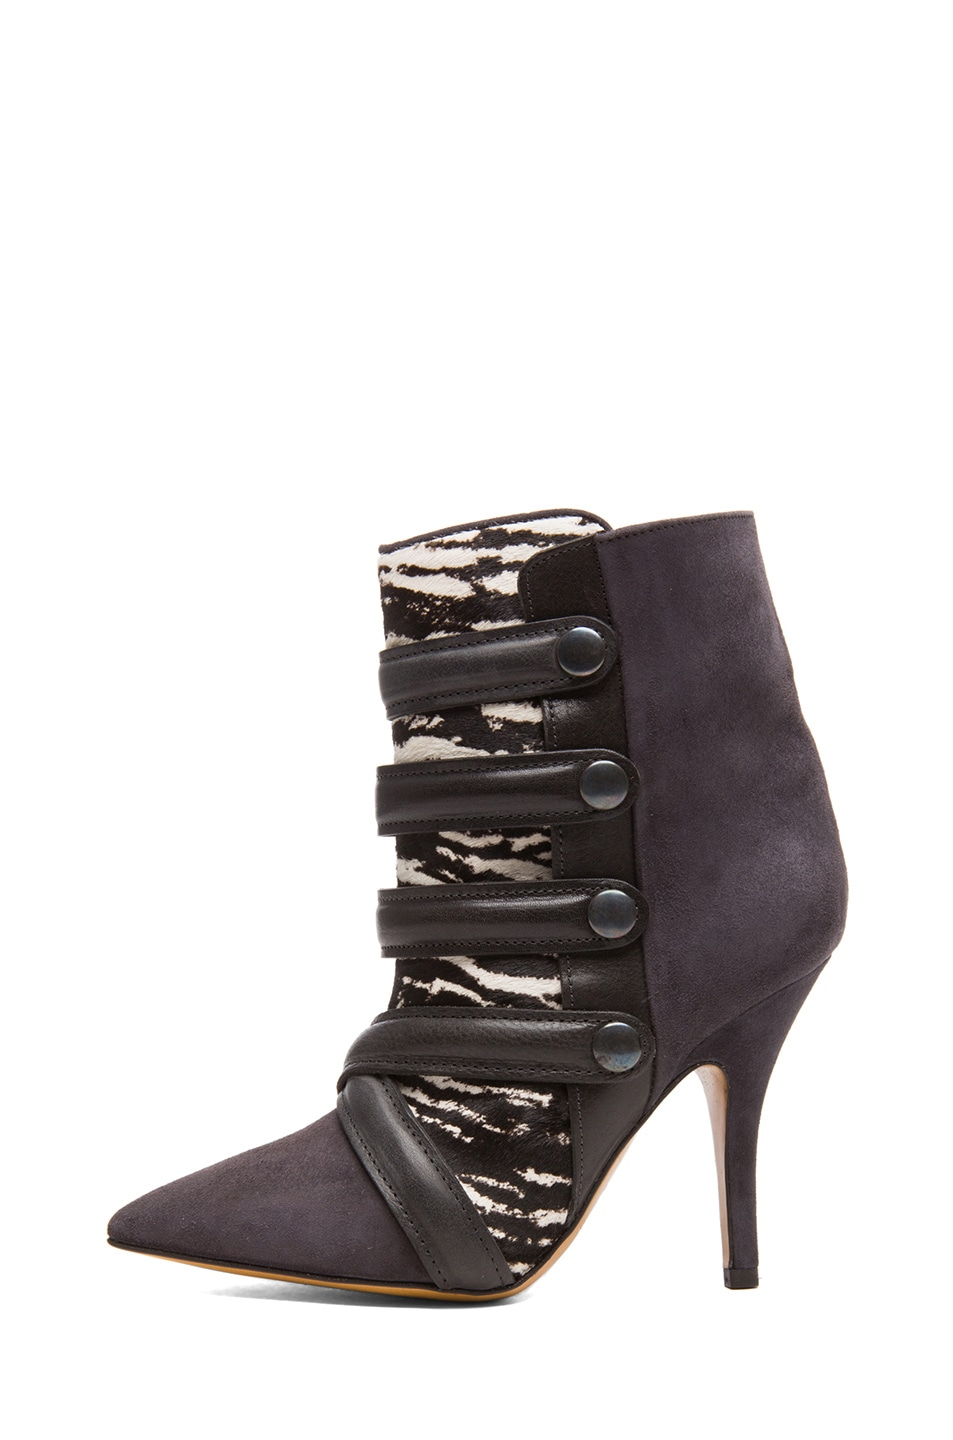 Image 1 of Isabel Marant Tacy Goat Suede Leather Pony Booties in Anthracite